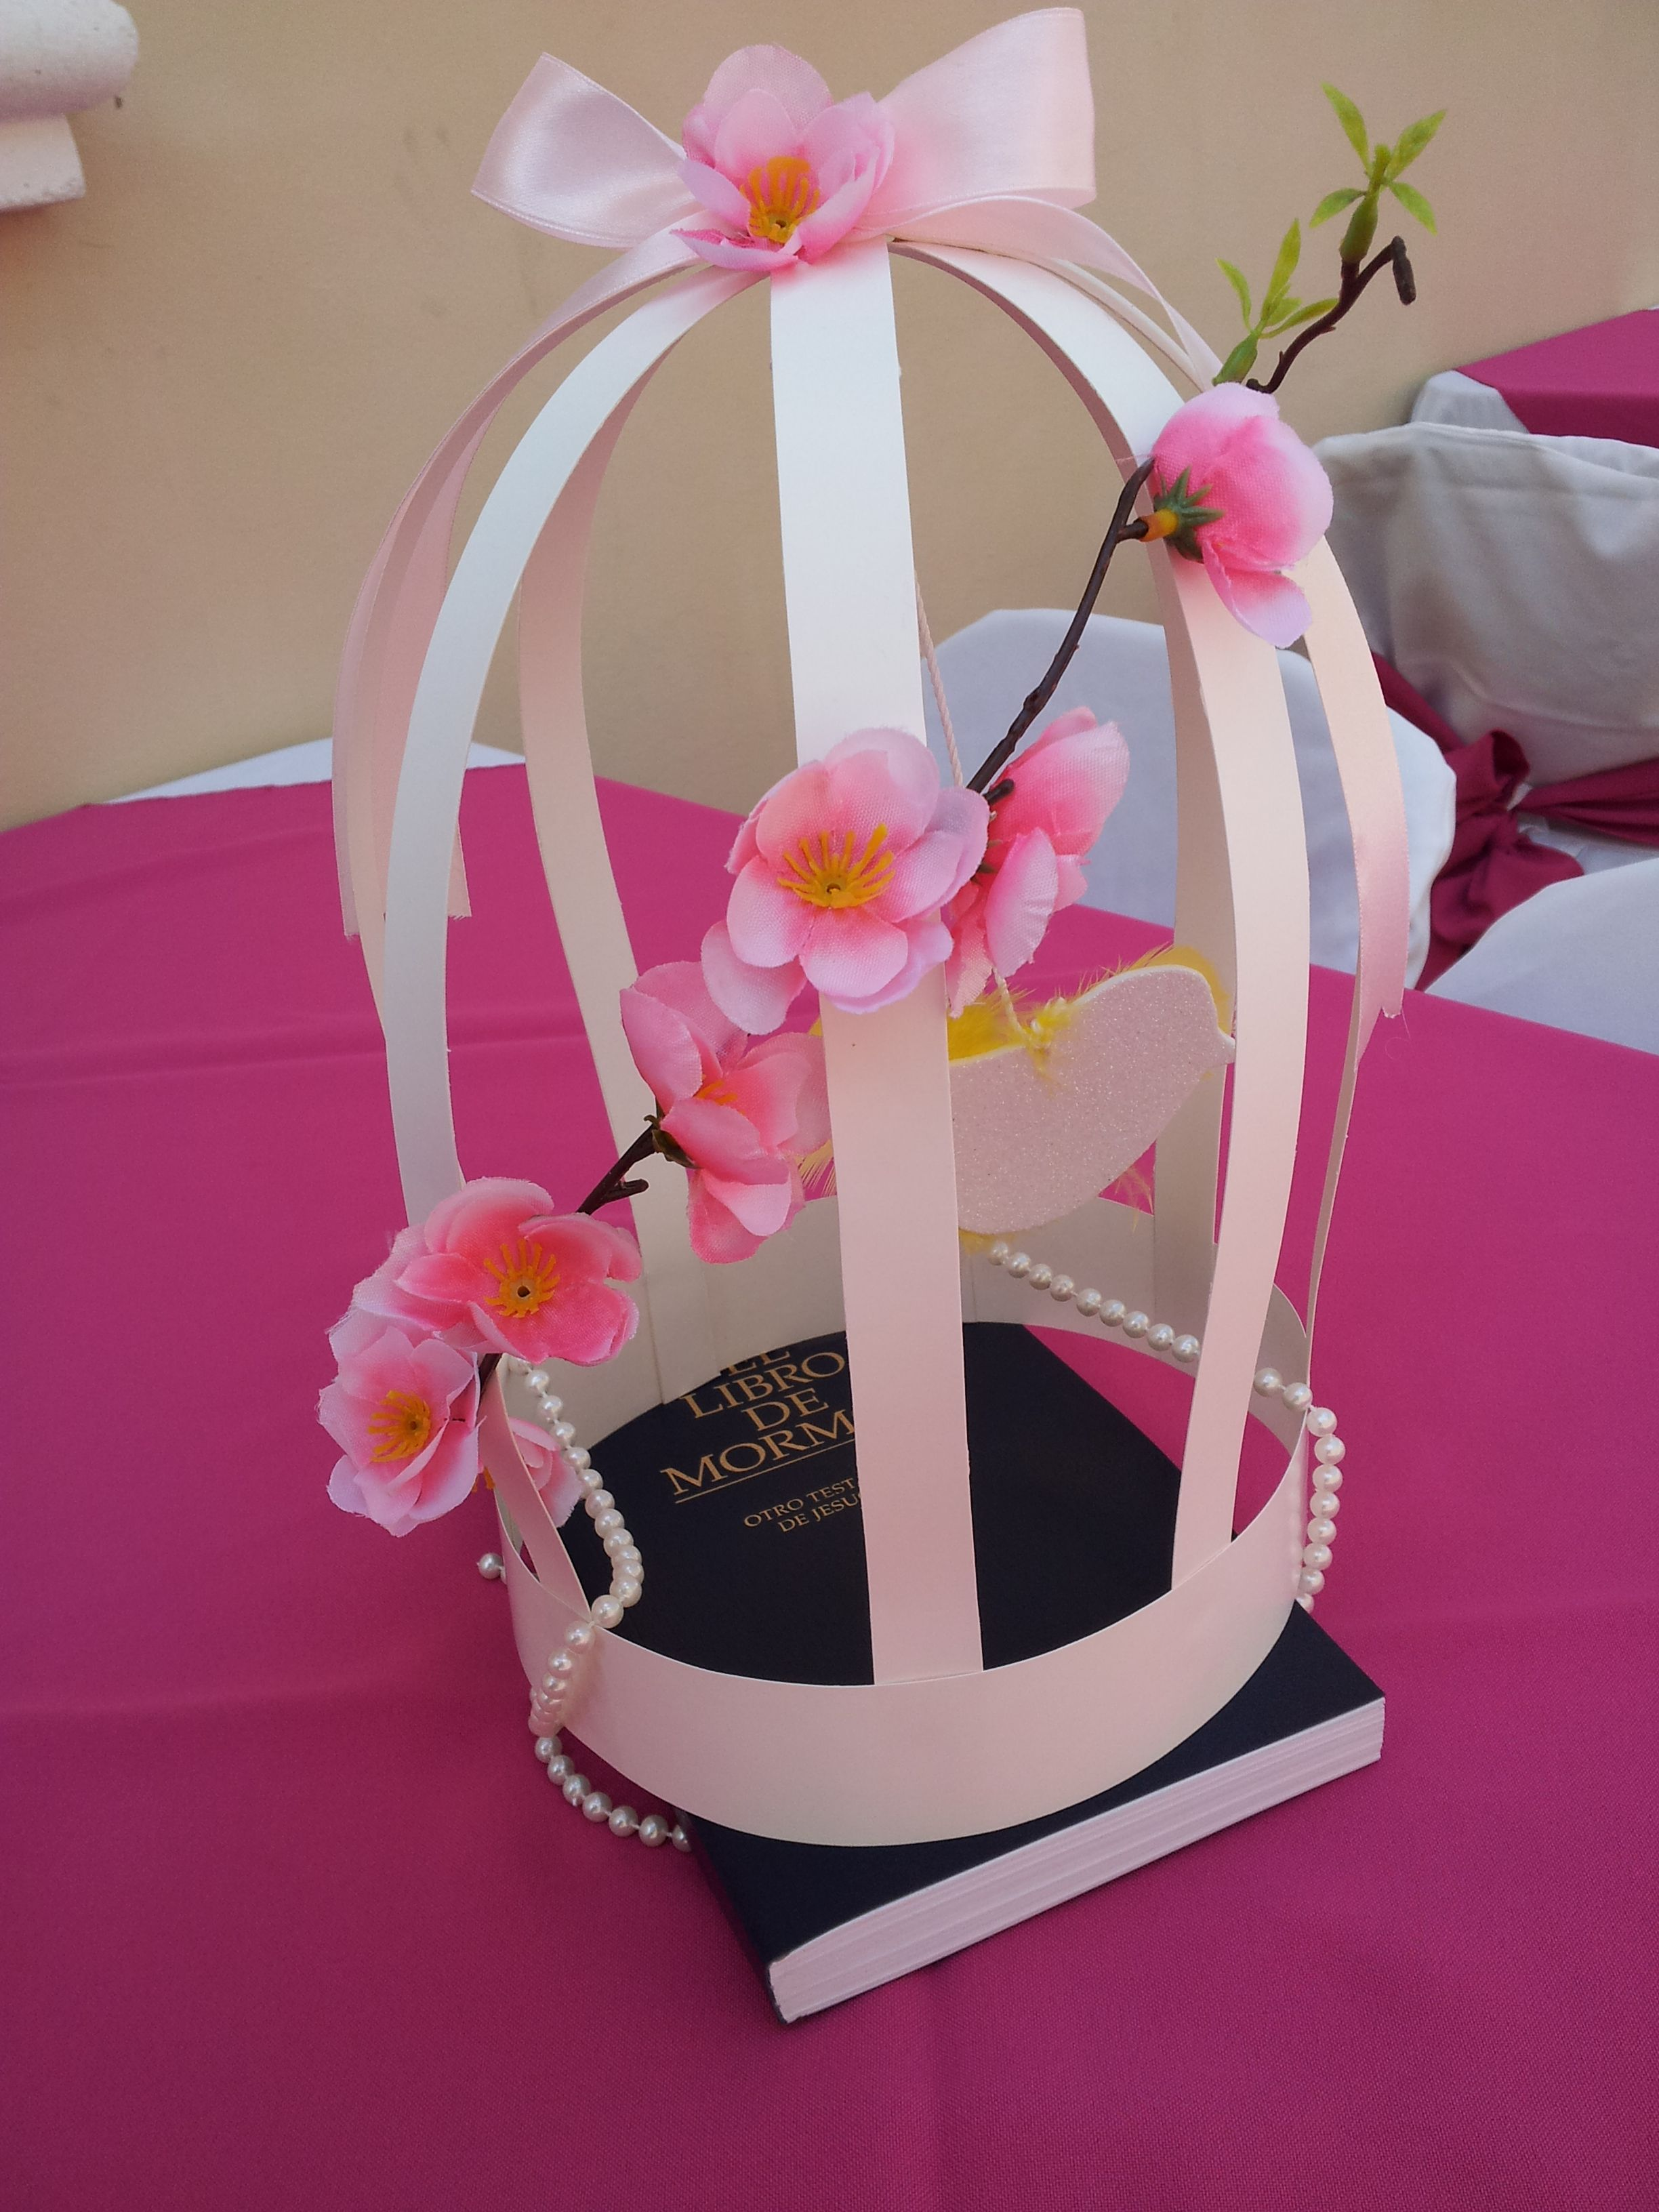 SUD Baptism birdcage, pearls and book of mormon Center Piece ...